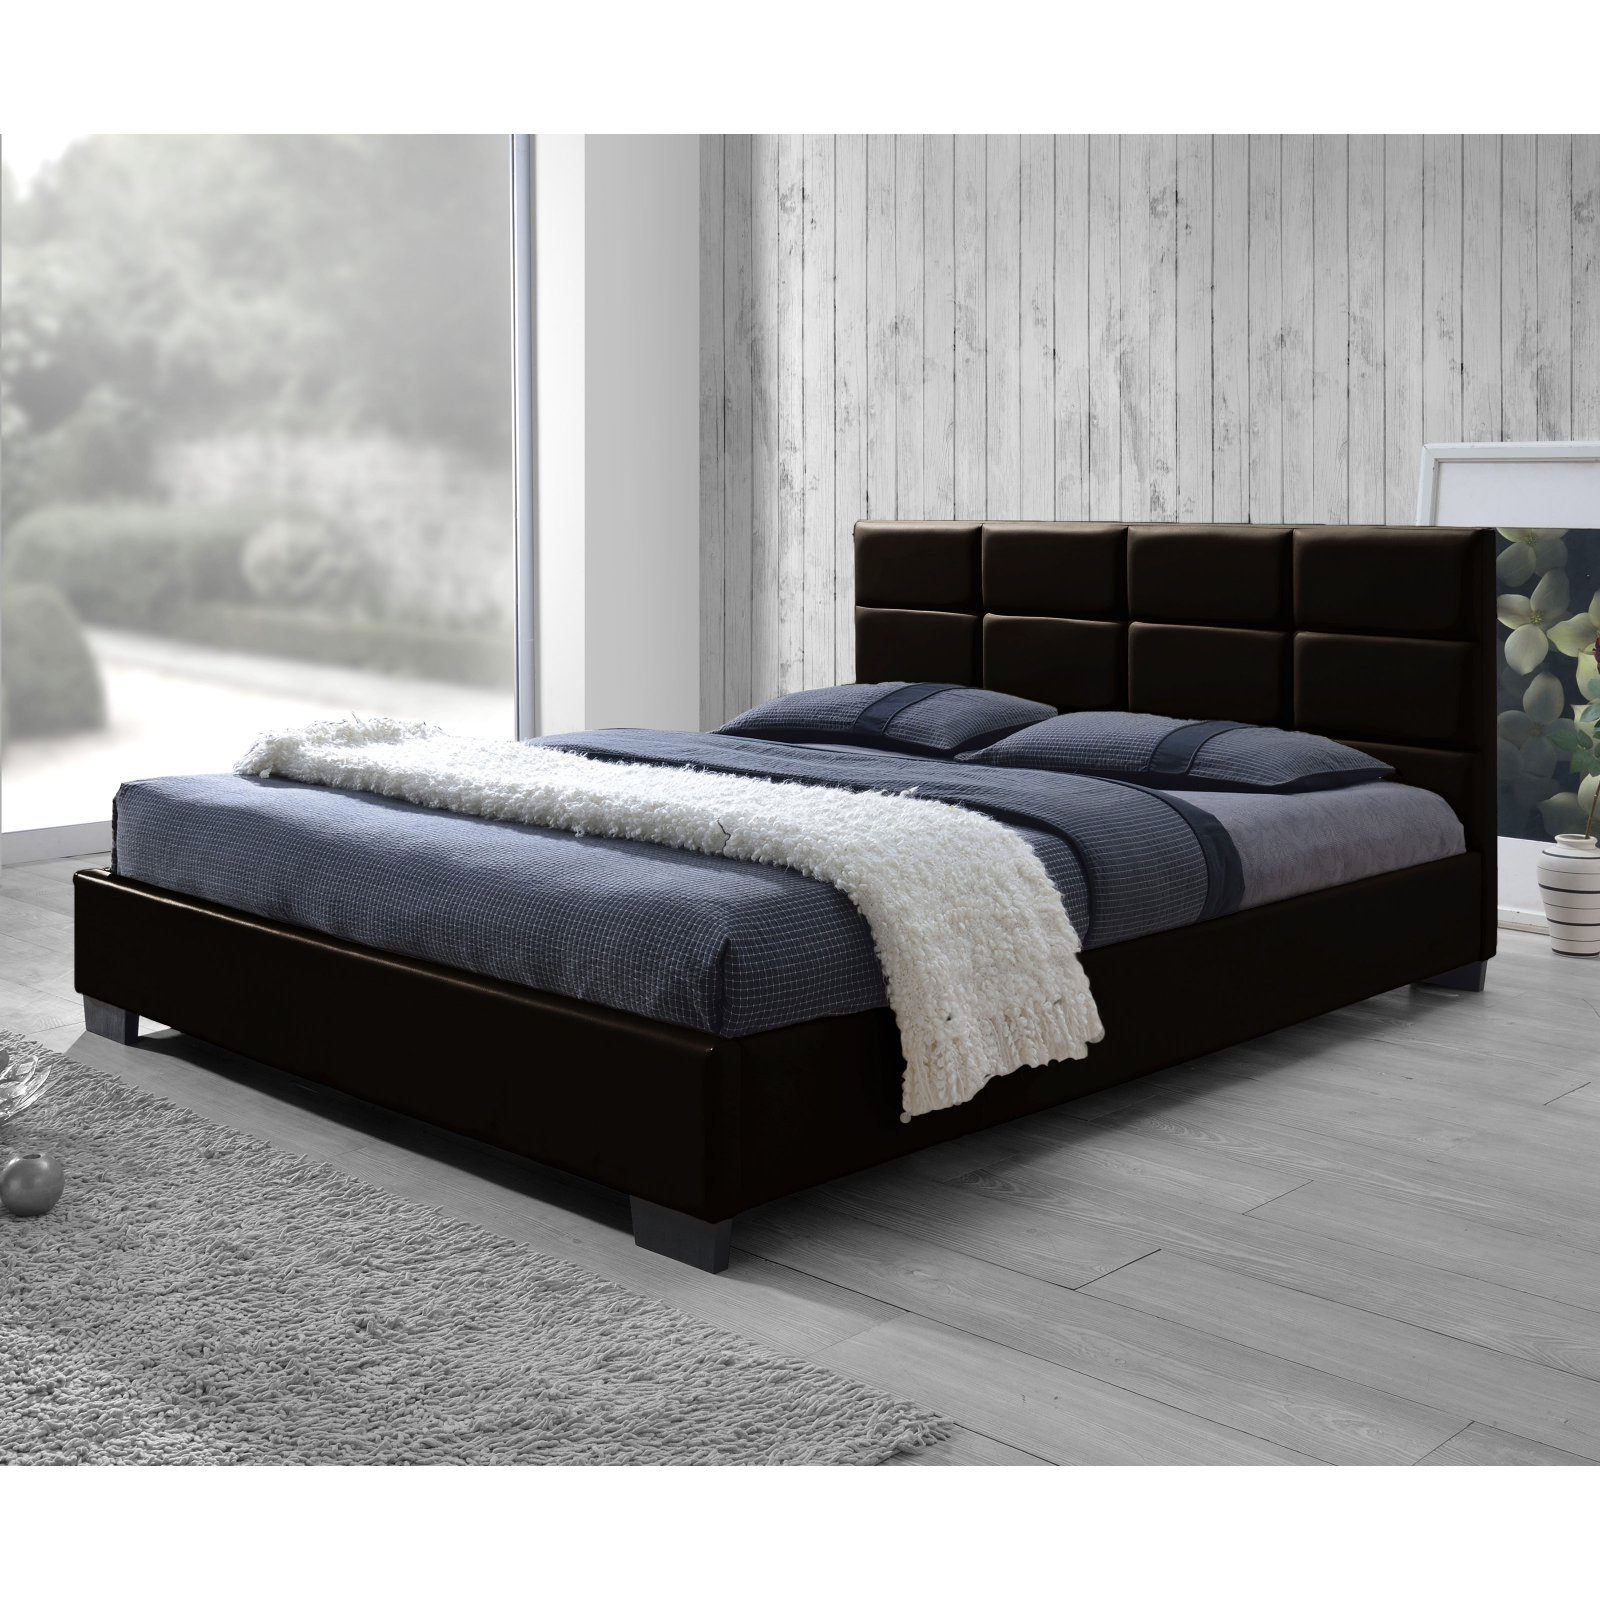 Baxton Studio Vivaldi Upholstered Platform Bed by Baxton Studio